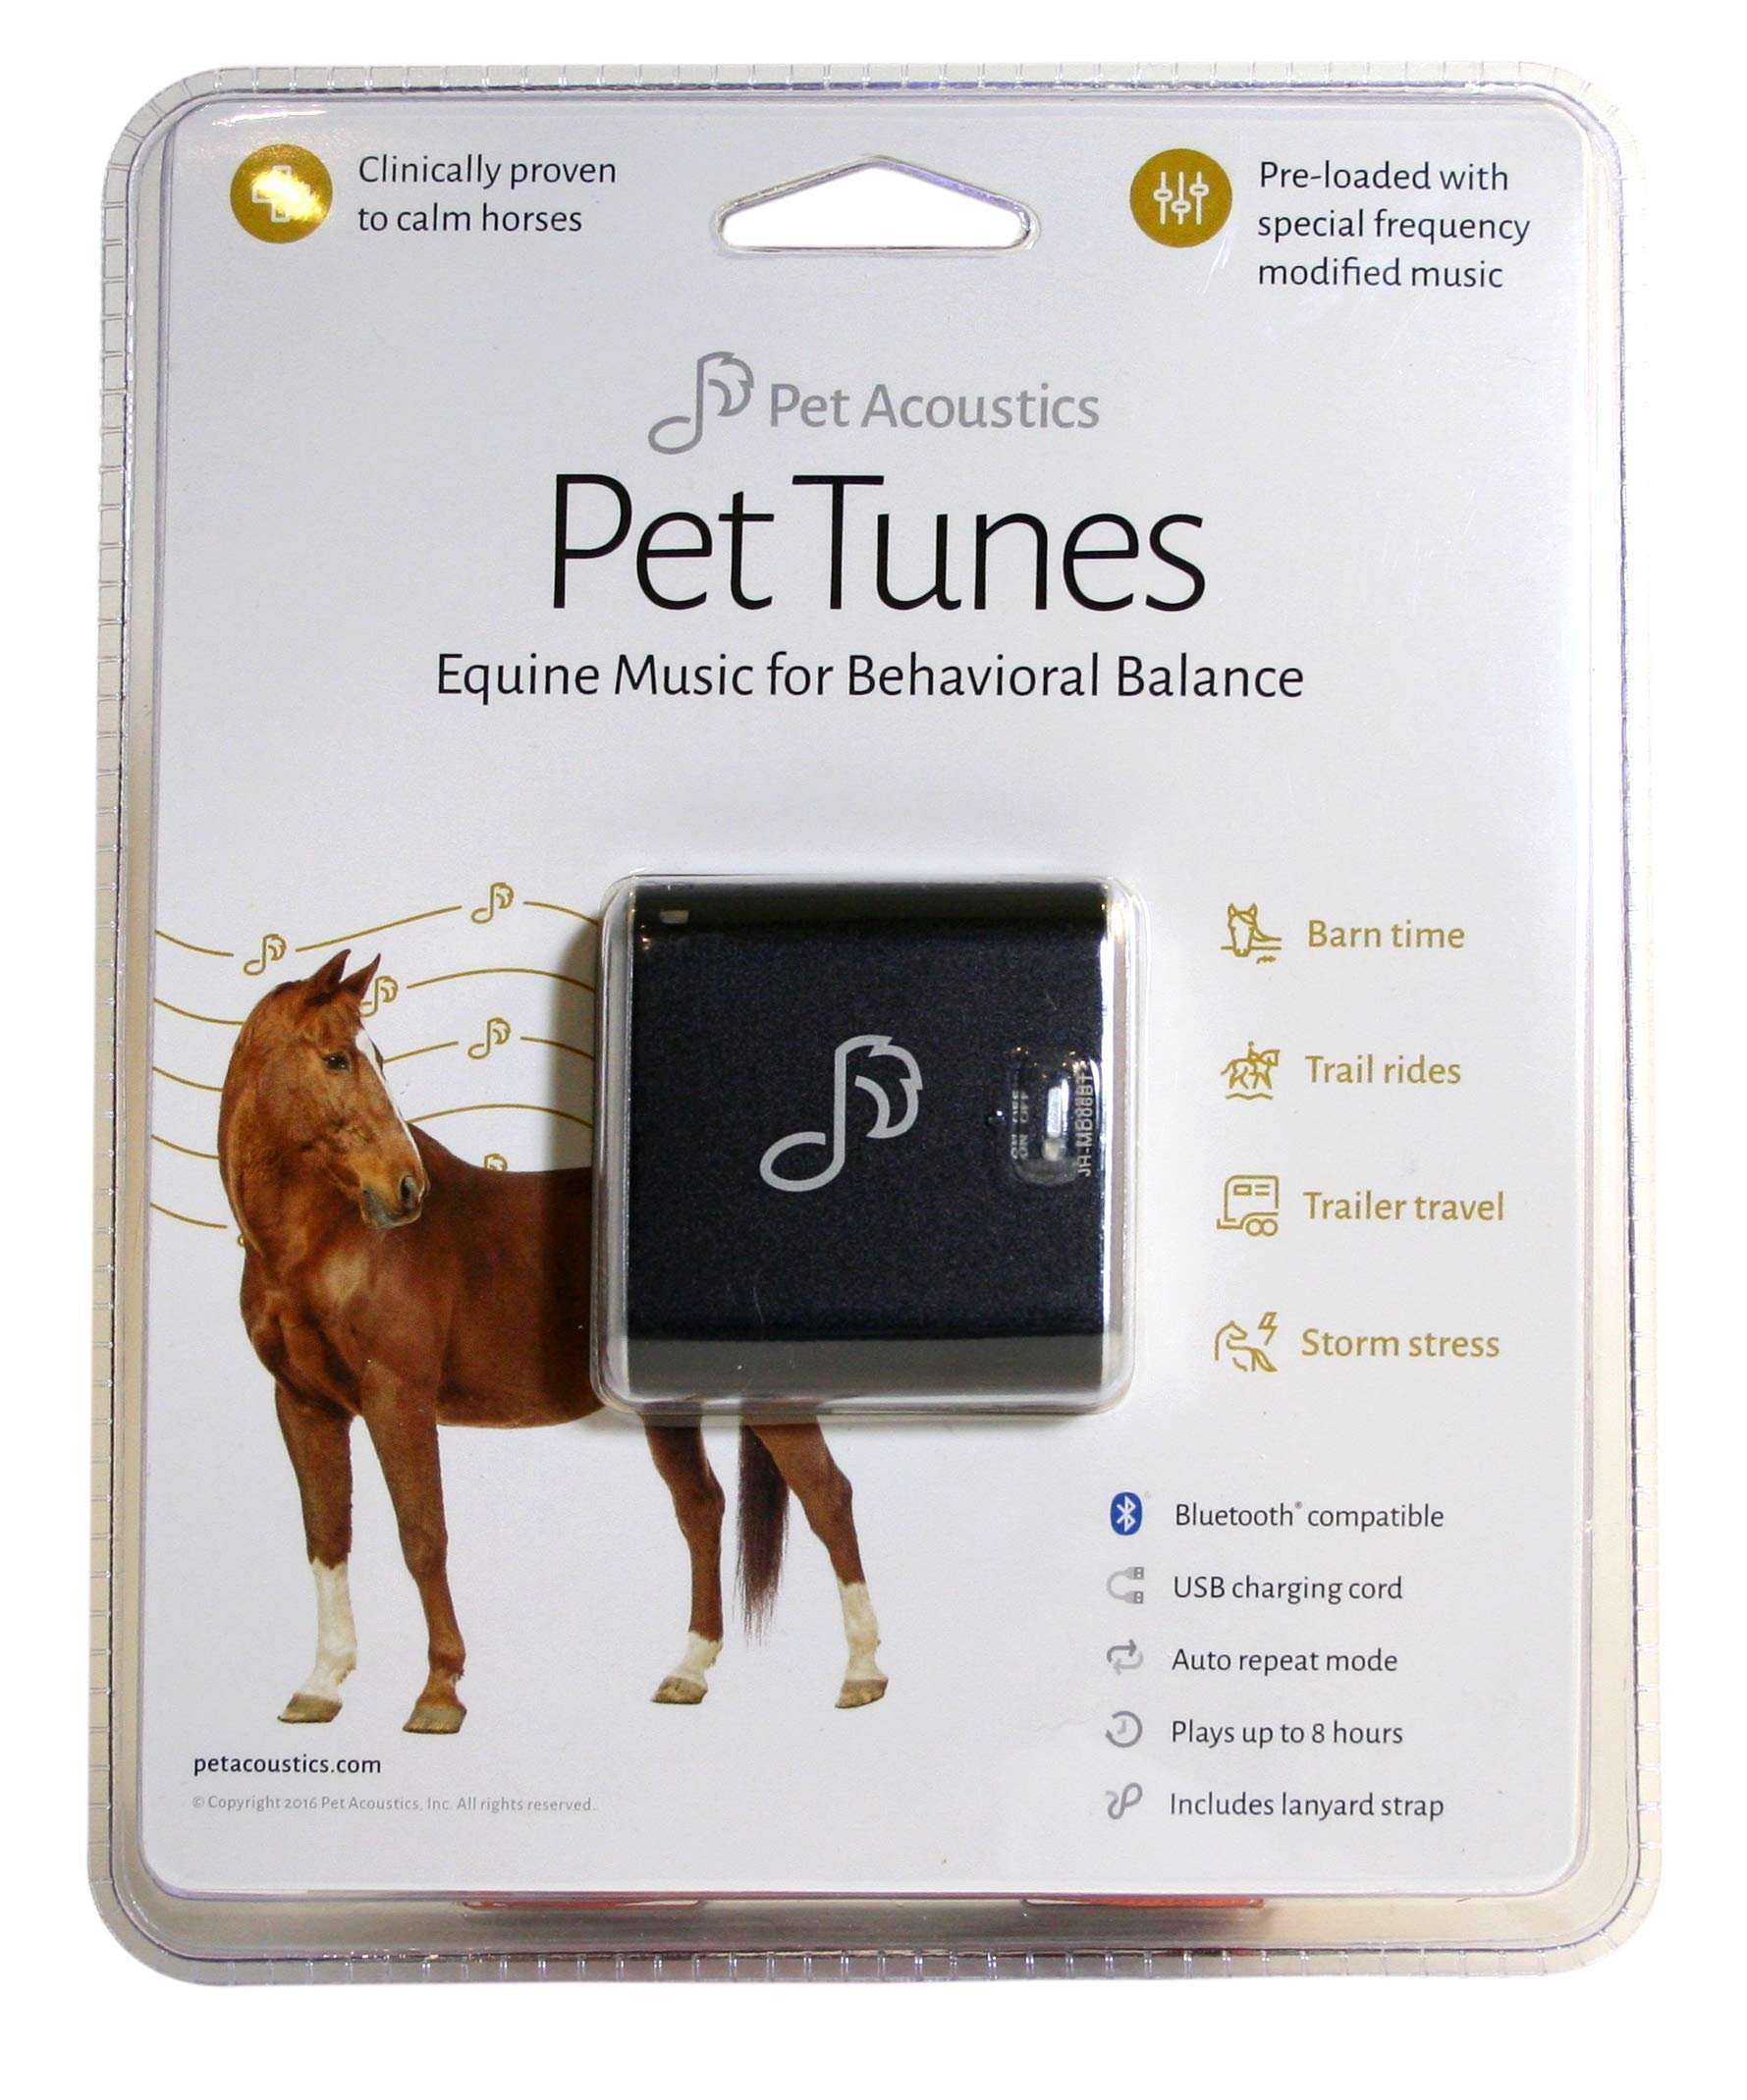 Pet Tunes Bluetooth Speaker Preloaded with Calming Equine Music by Pet Acoustics